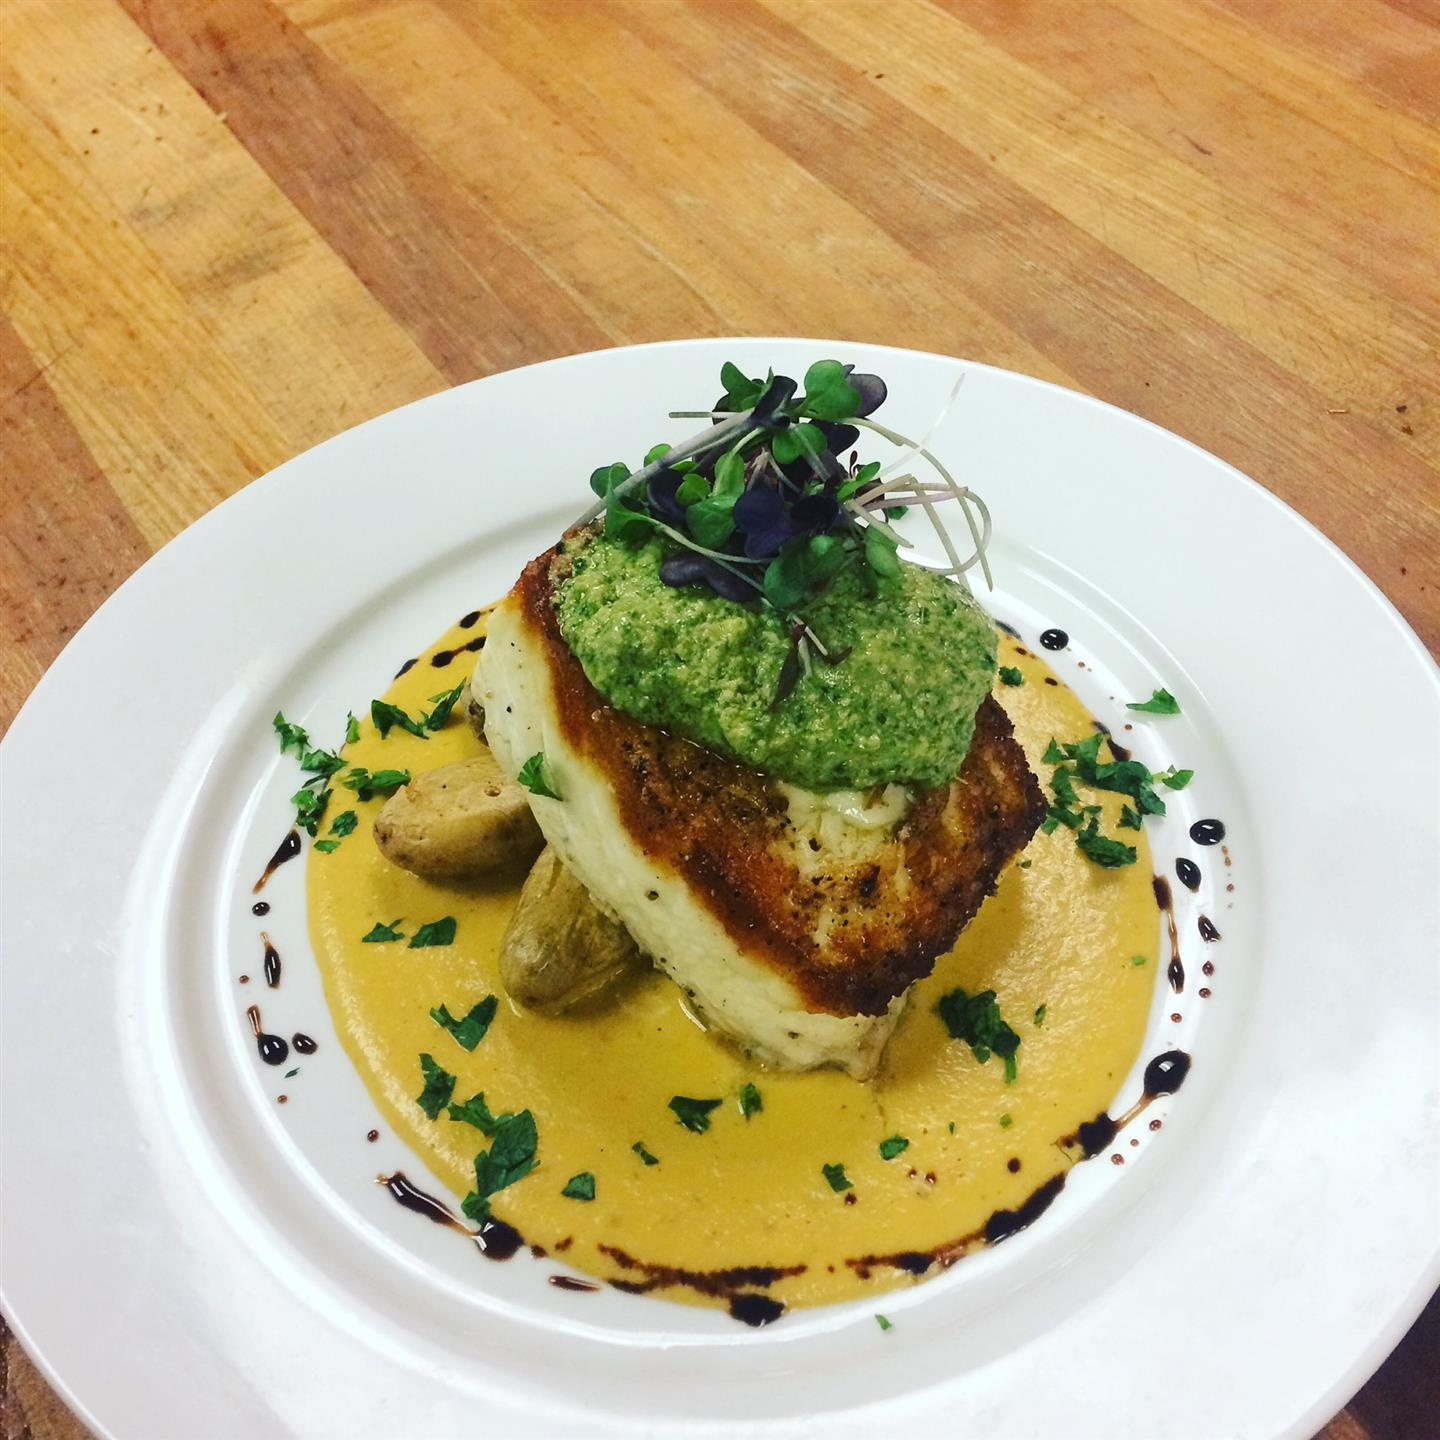 Seared Pork Chop topped with pesto and garnish on a plate with sauce